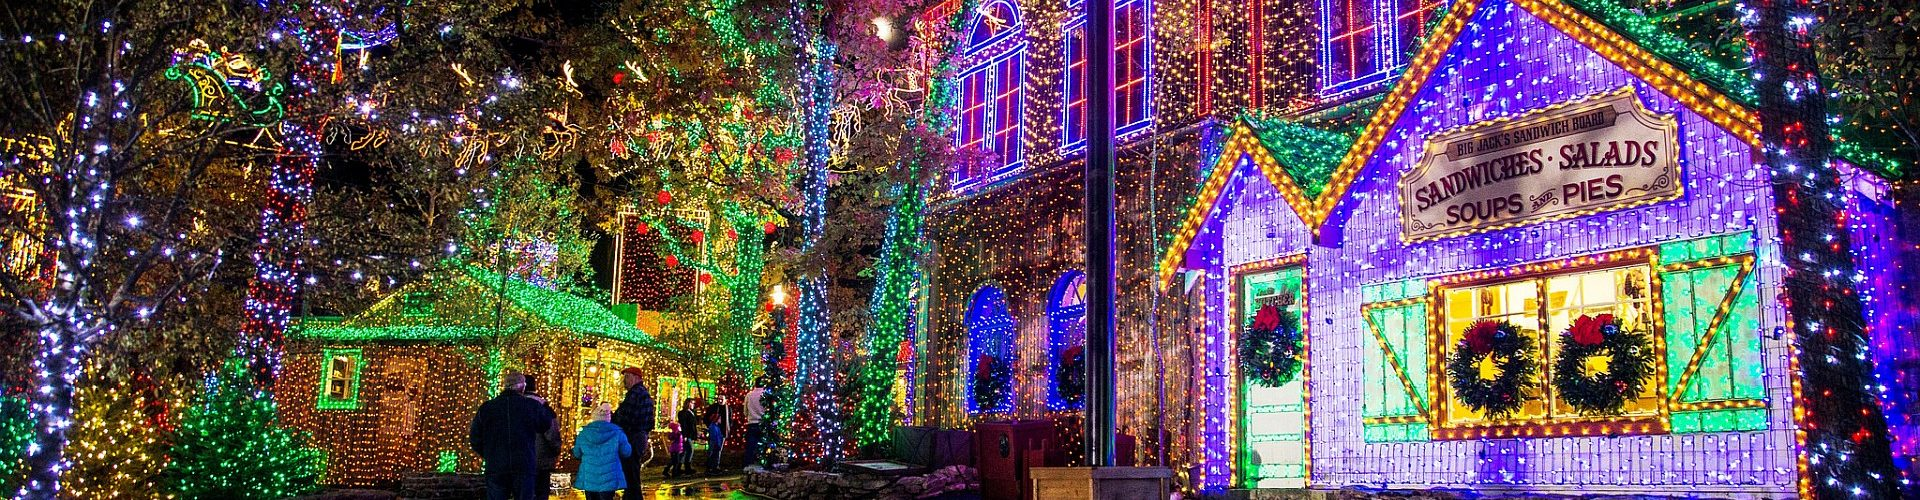 Best Christmas Light Displays in Branson, MO!